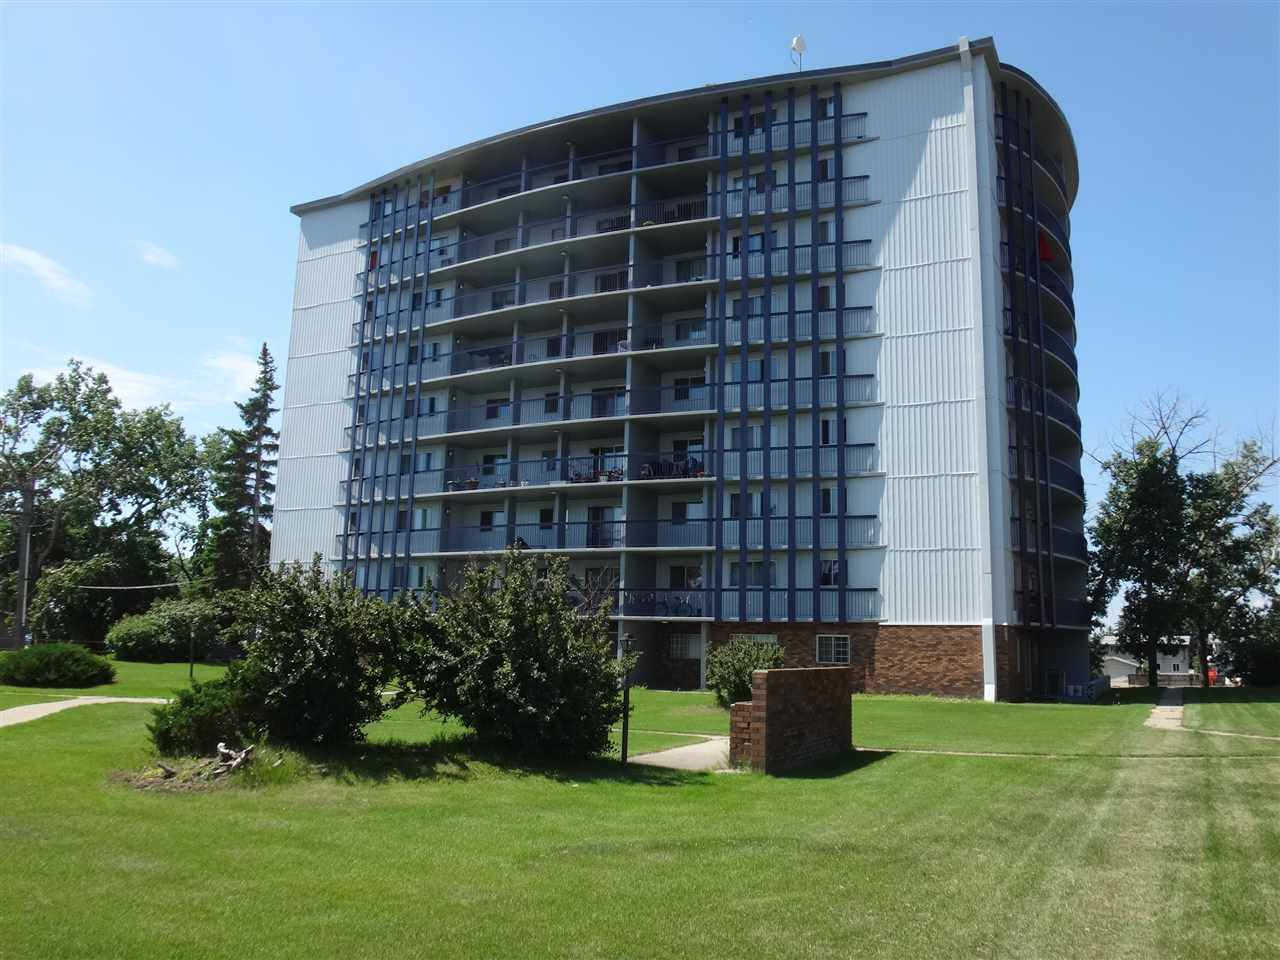 Main Photo: 36 13435 97 Street in Edmonton: Zone 02 Condo for sale : MLS® # E4068849